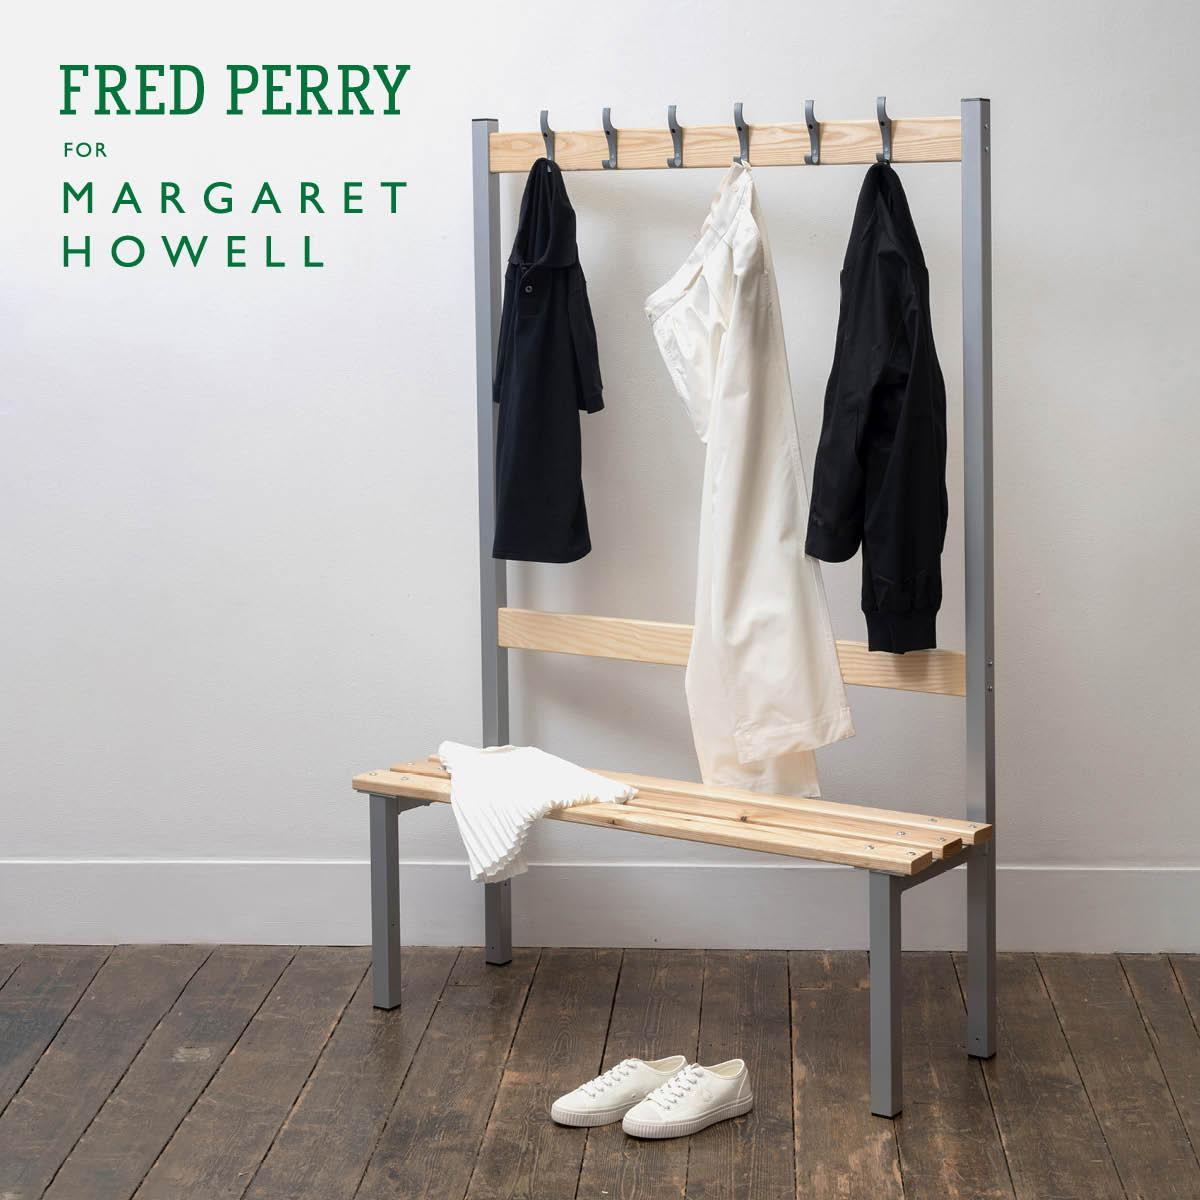 FRED PERRY POUR MARGARET HOWELL